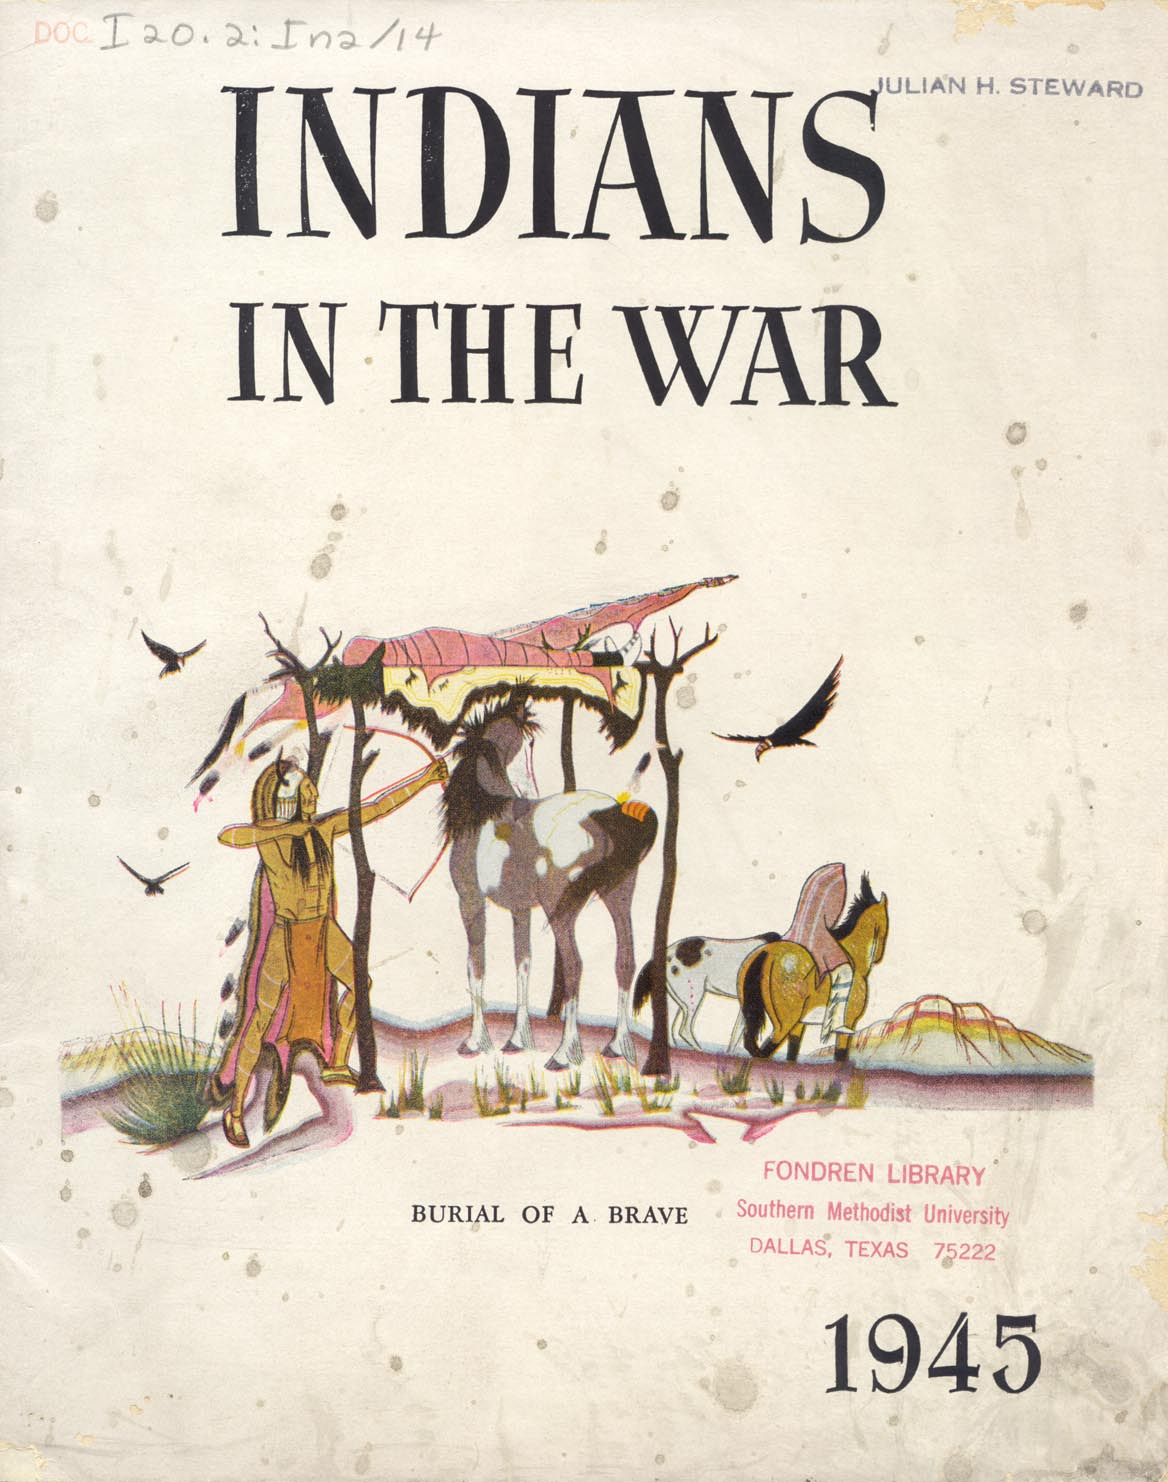 Indians-in-the-war